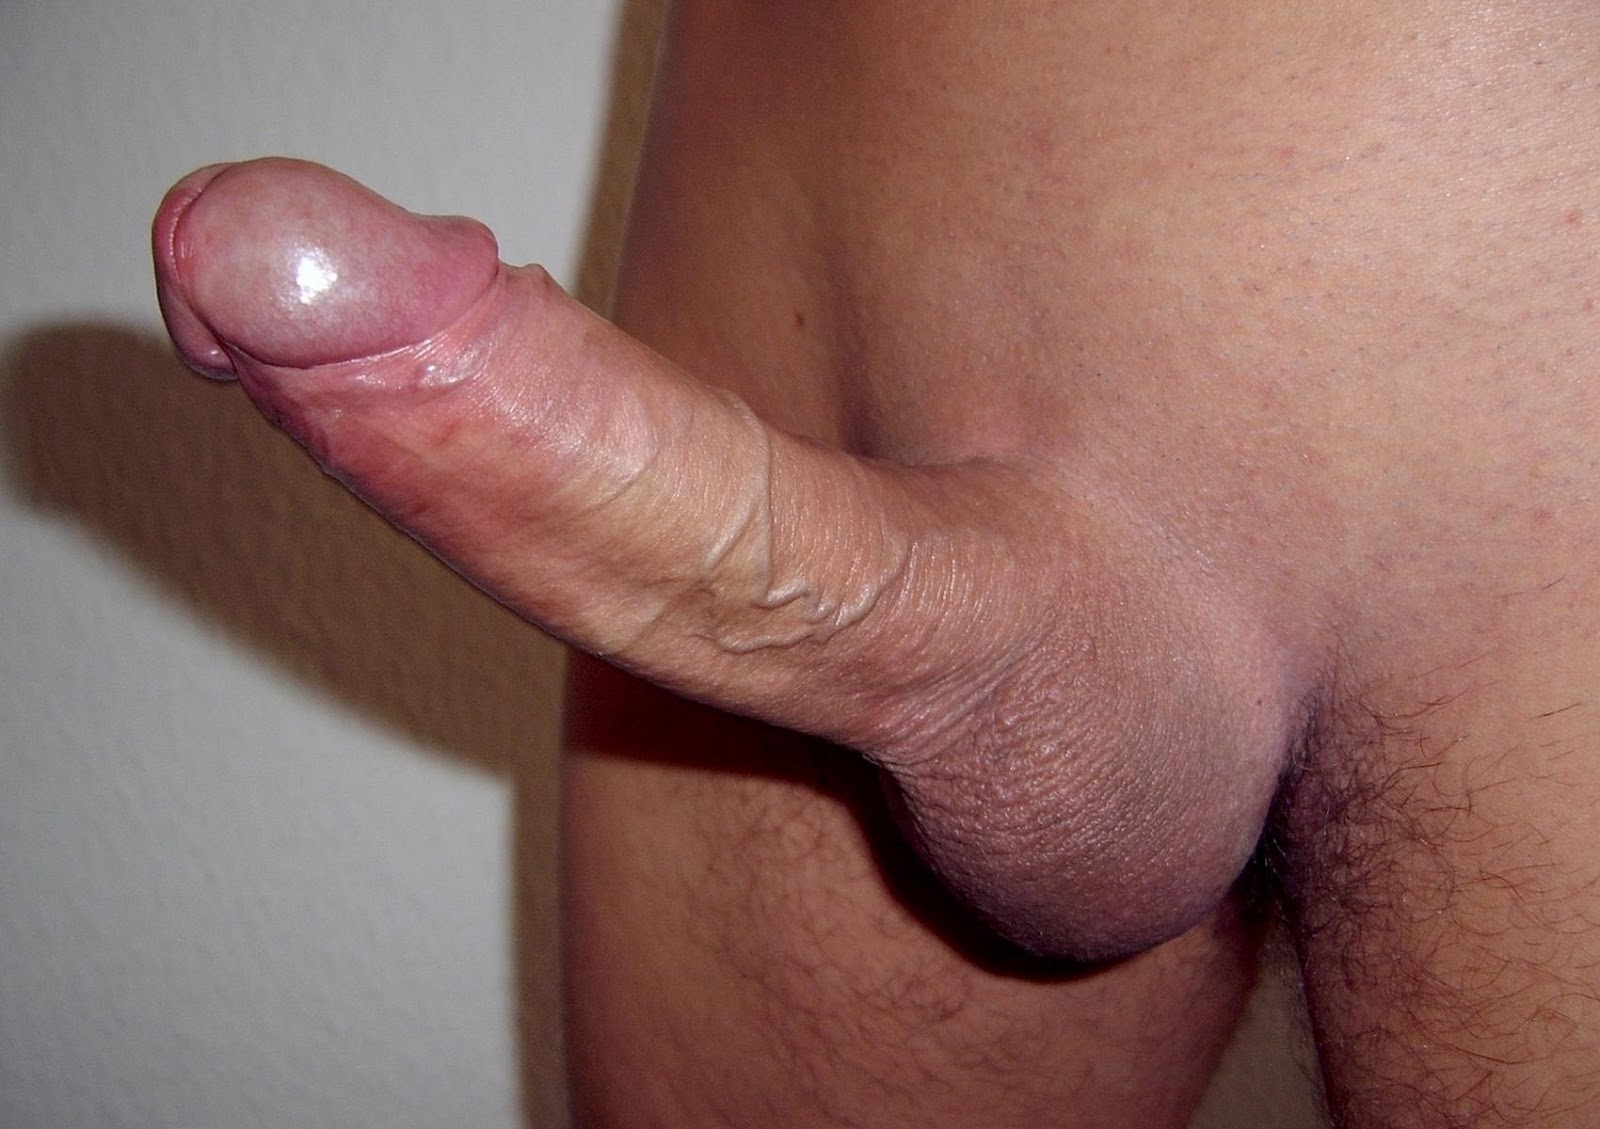 Penis ready to fuck vagina